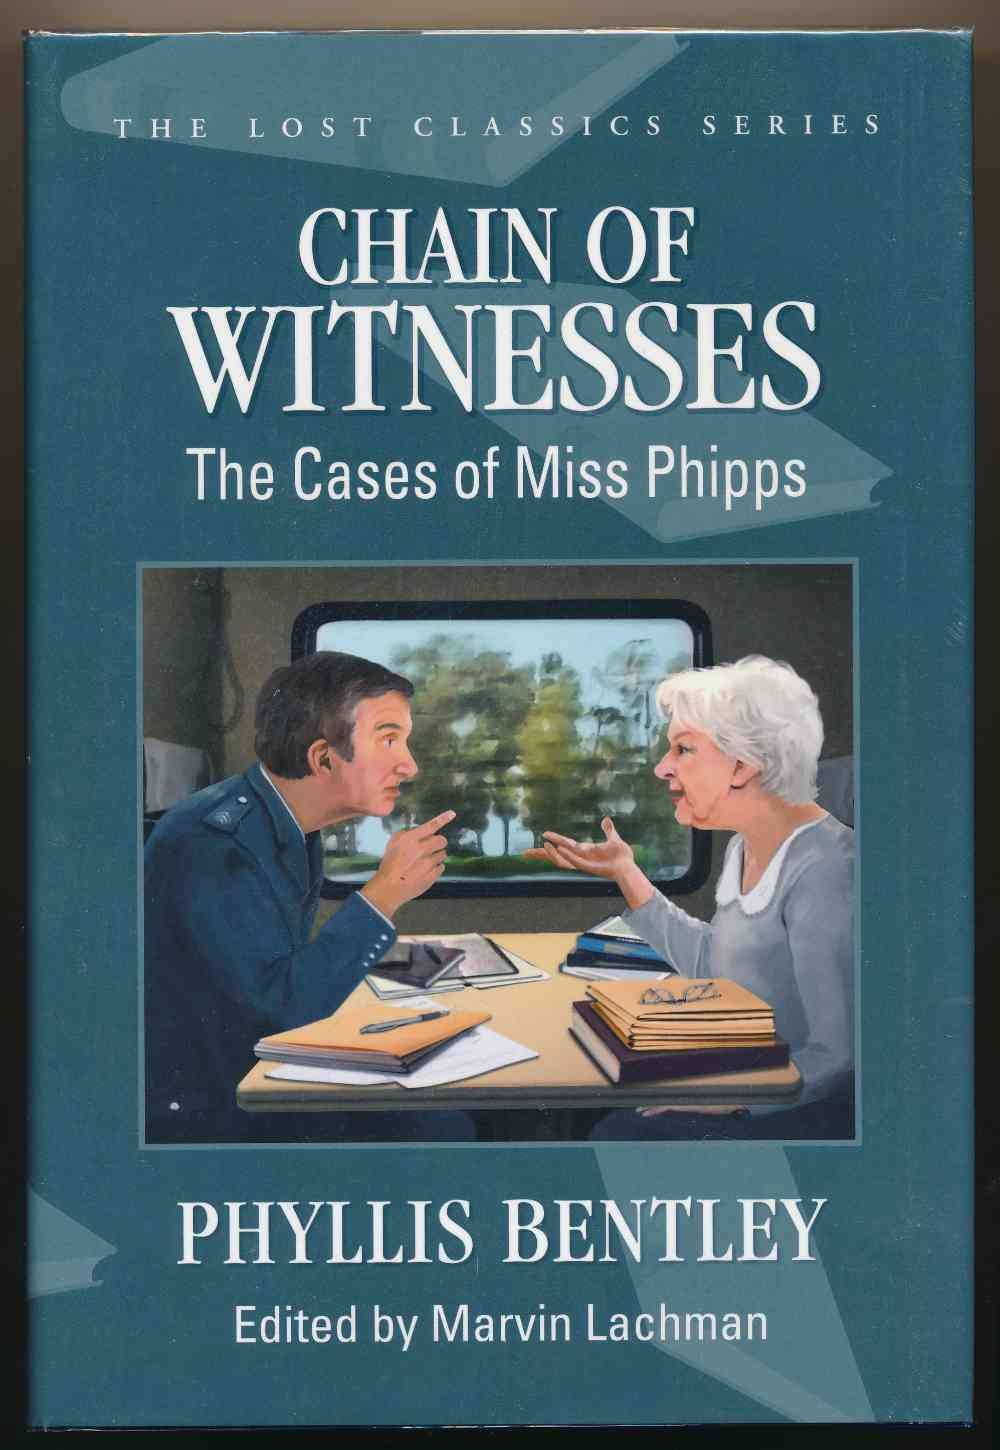 Chain of witnesses : the cases of Miss Phipps